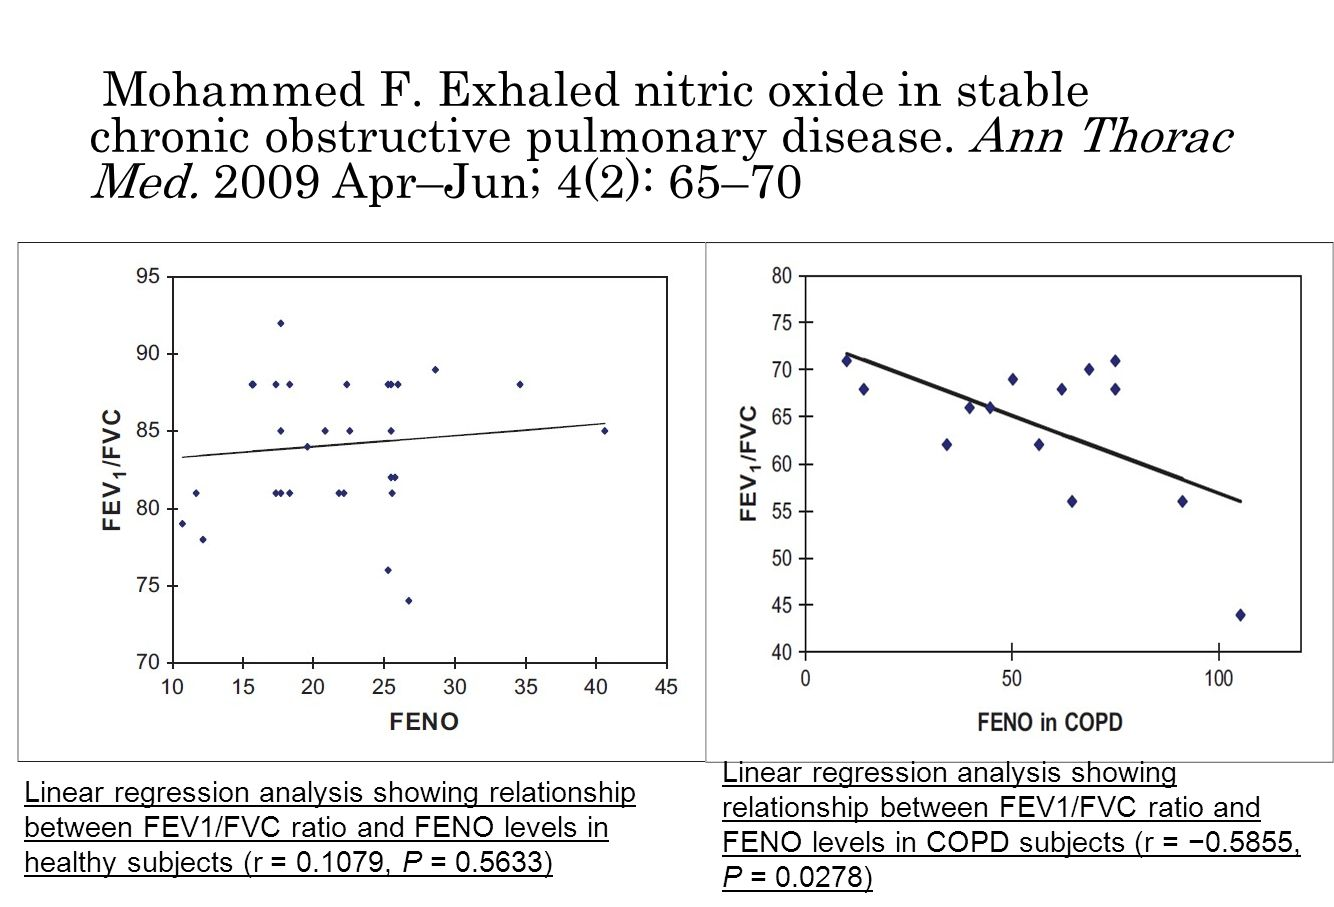 Mohammed F.Exhaled nitric oxide in stable chronic obstructive pulmonary disease.